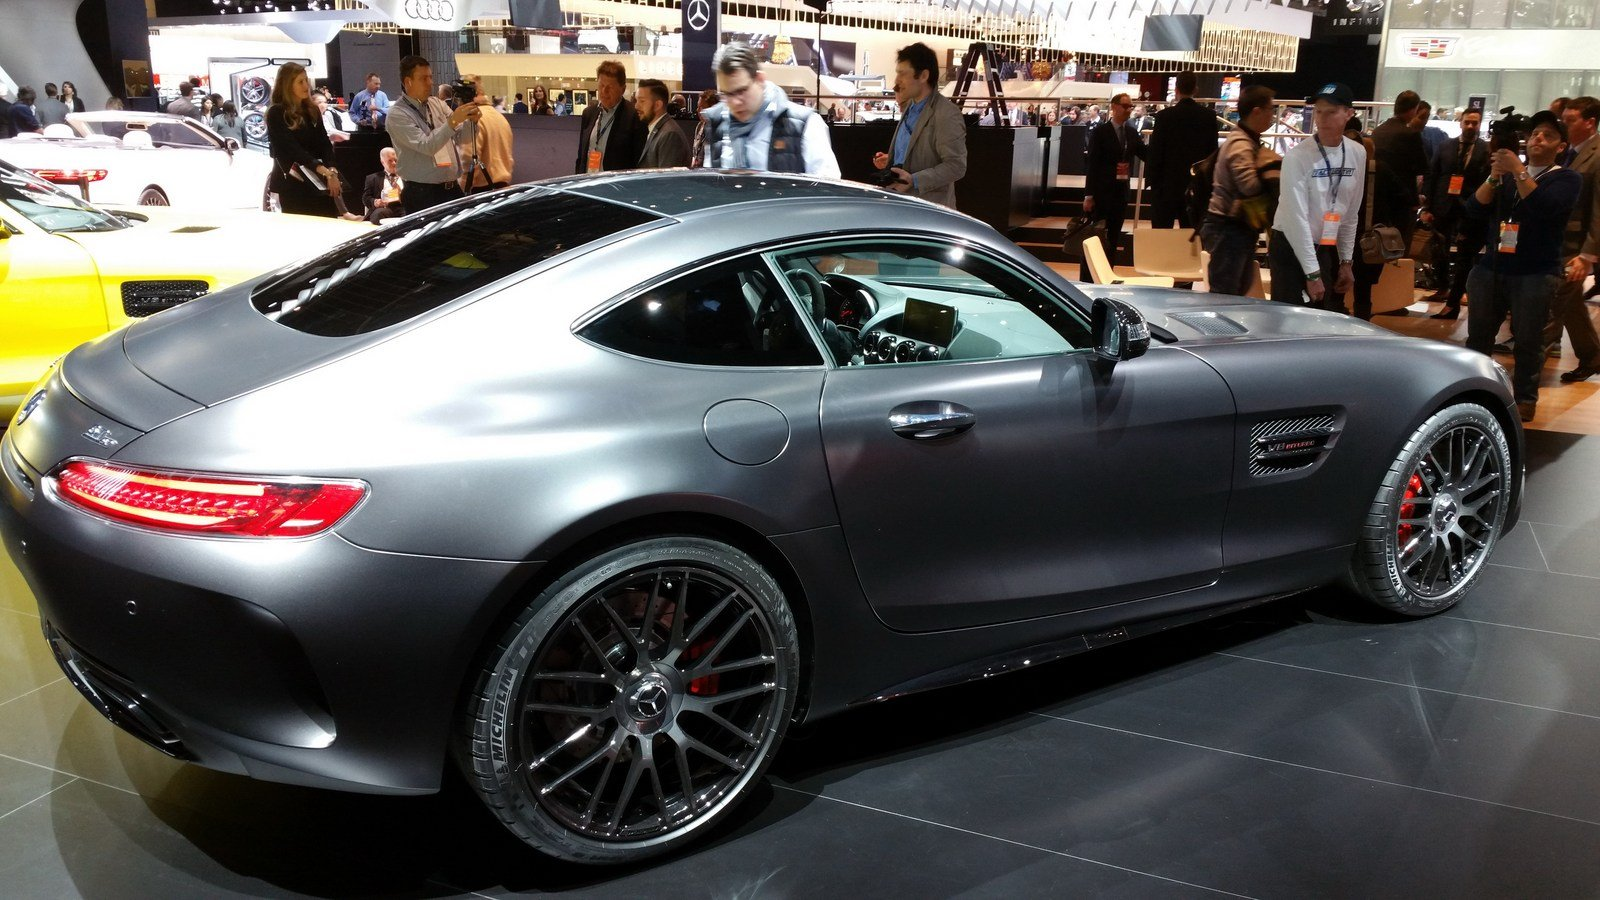 2018 mercedes amg gt c coupe picture 700778 car review top speed. Black Bedroom Furniture Sets. Home Design Ideas